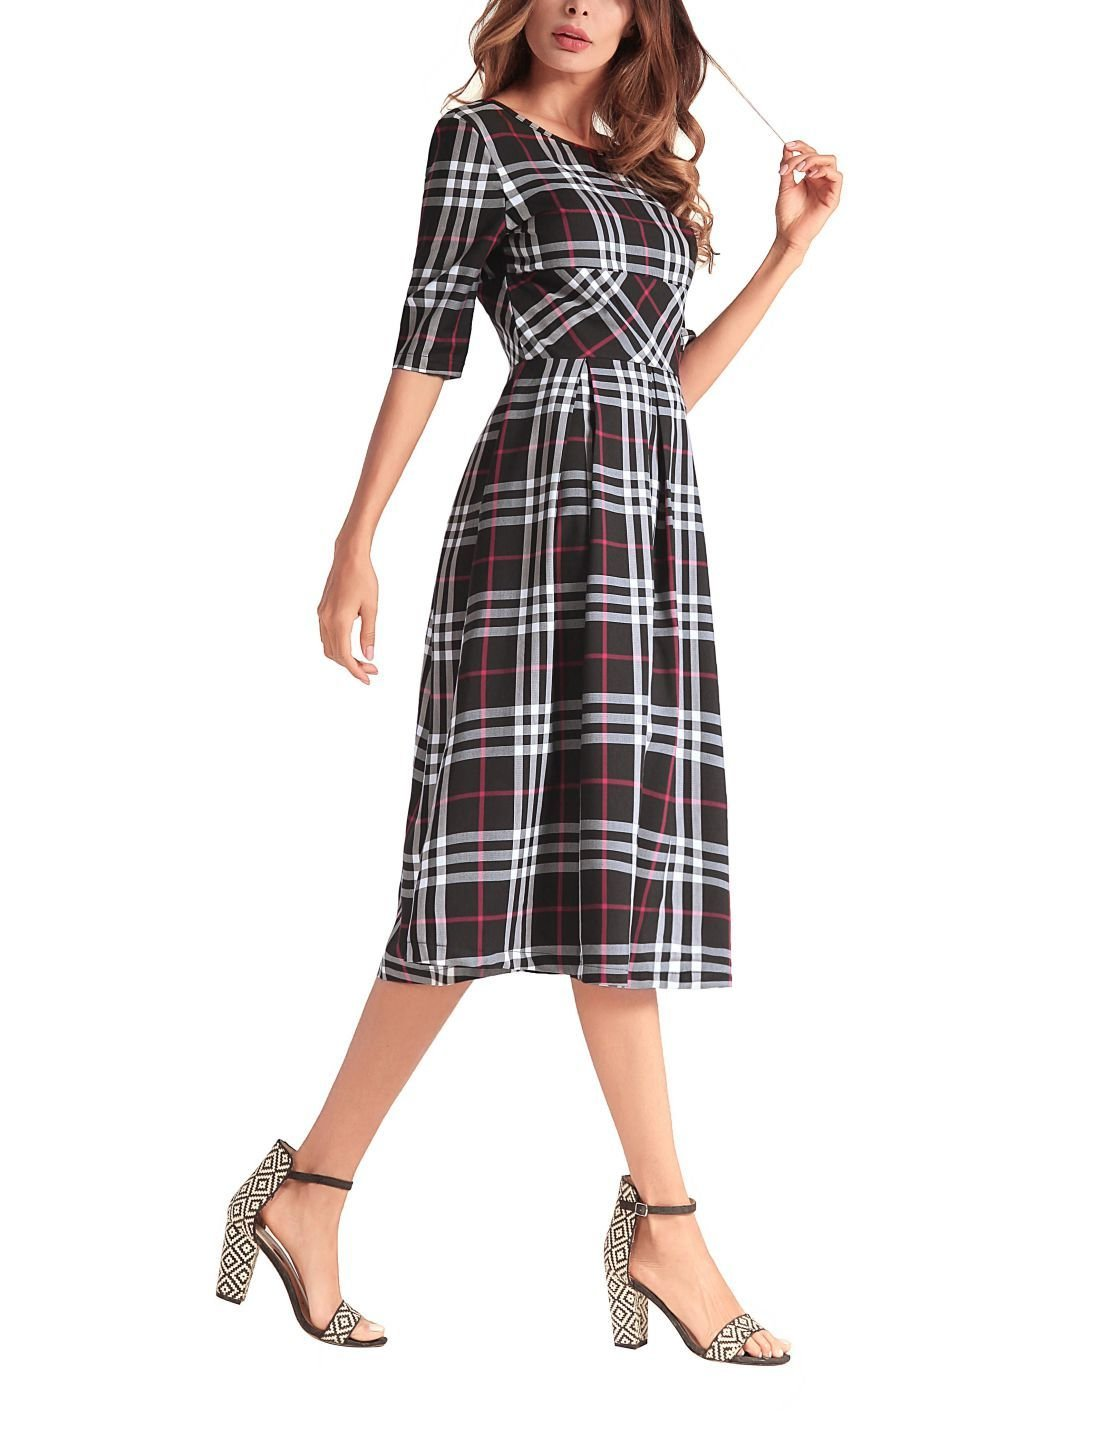 Plaid Dress for Work